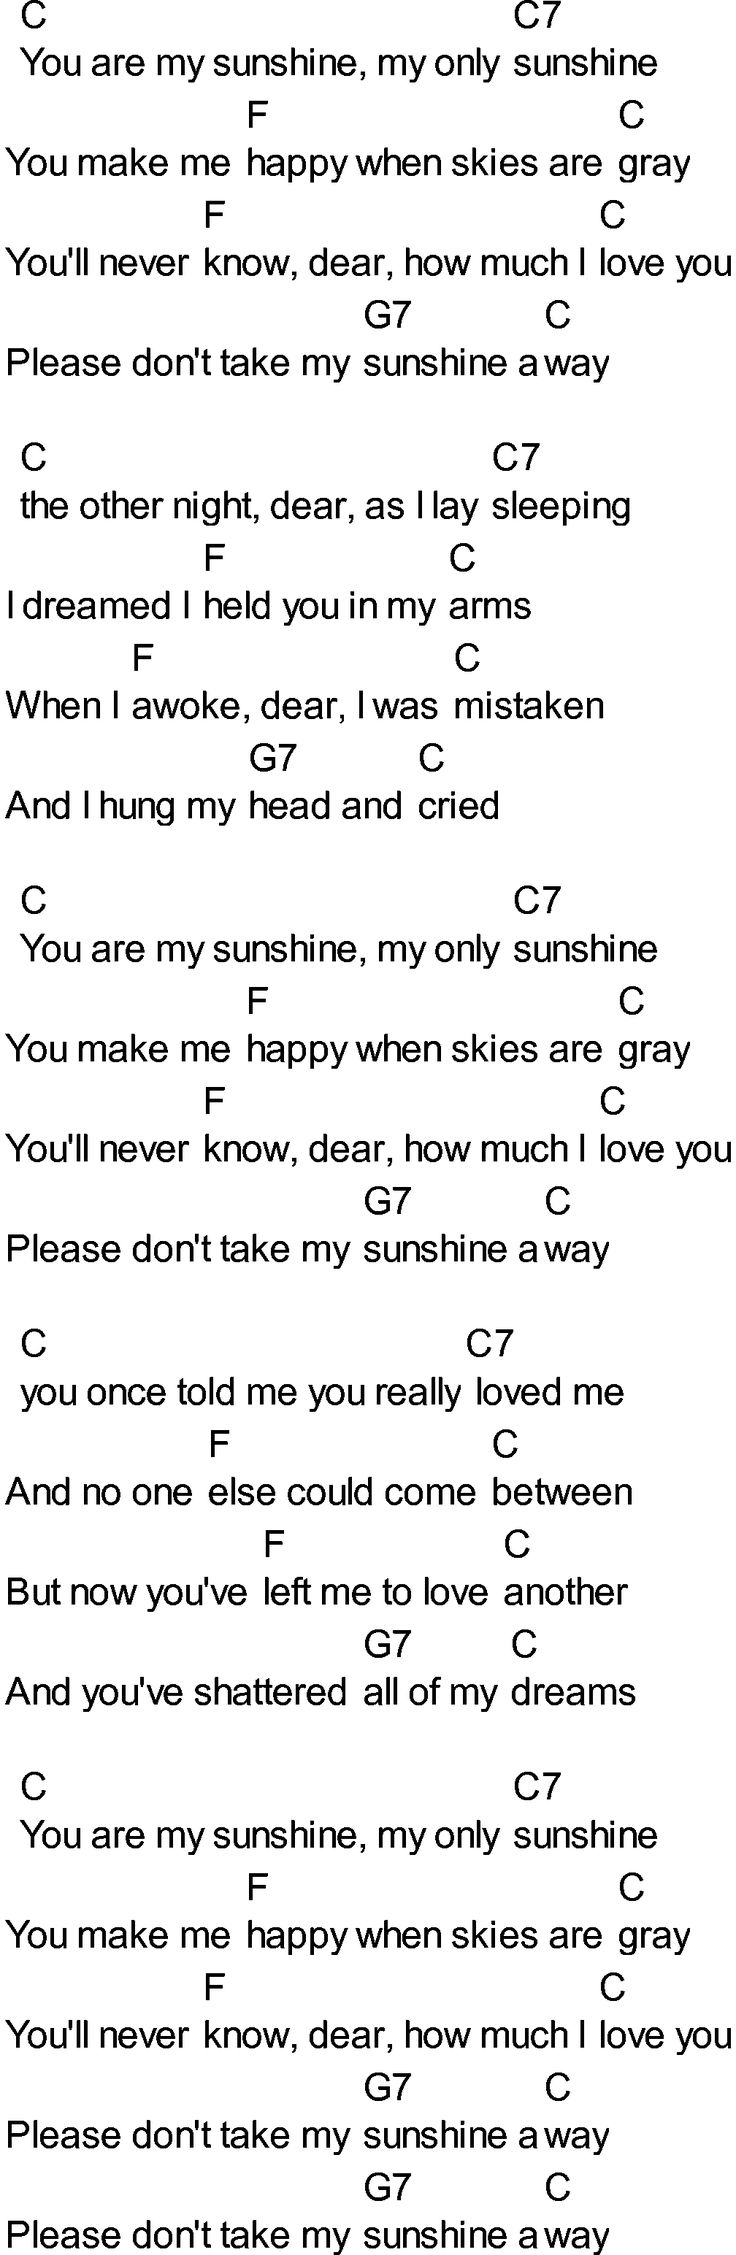 49 best ukulele tabs images on pinterest music lyrics banjos bluegrass songs with chords you are my sunshine ukulele hexwebz Gallery